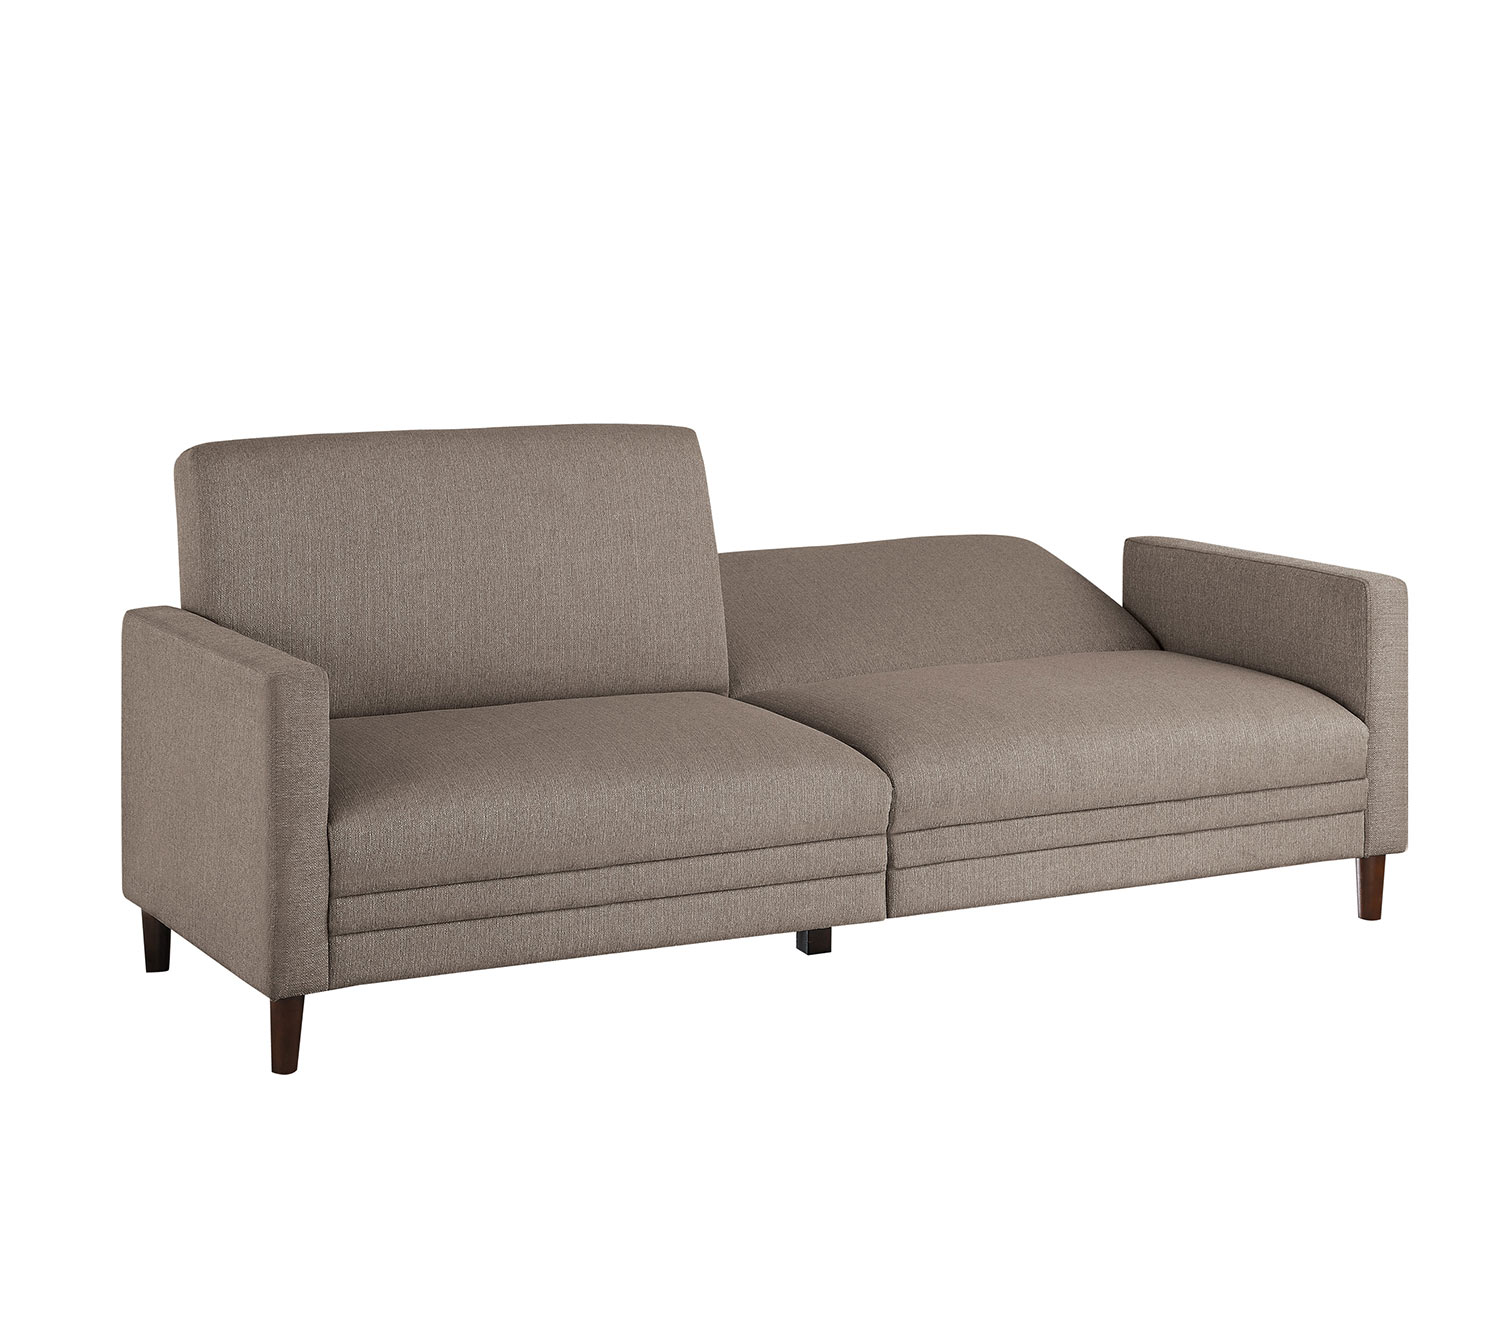 Homelegance Layanna Click Clack Sofa - Brown